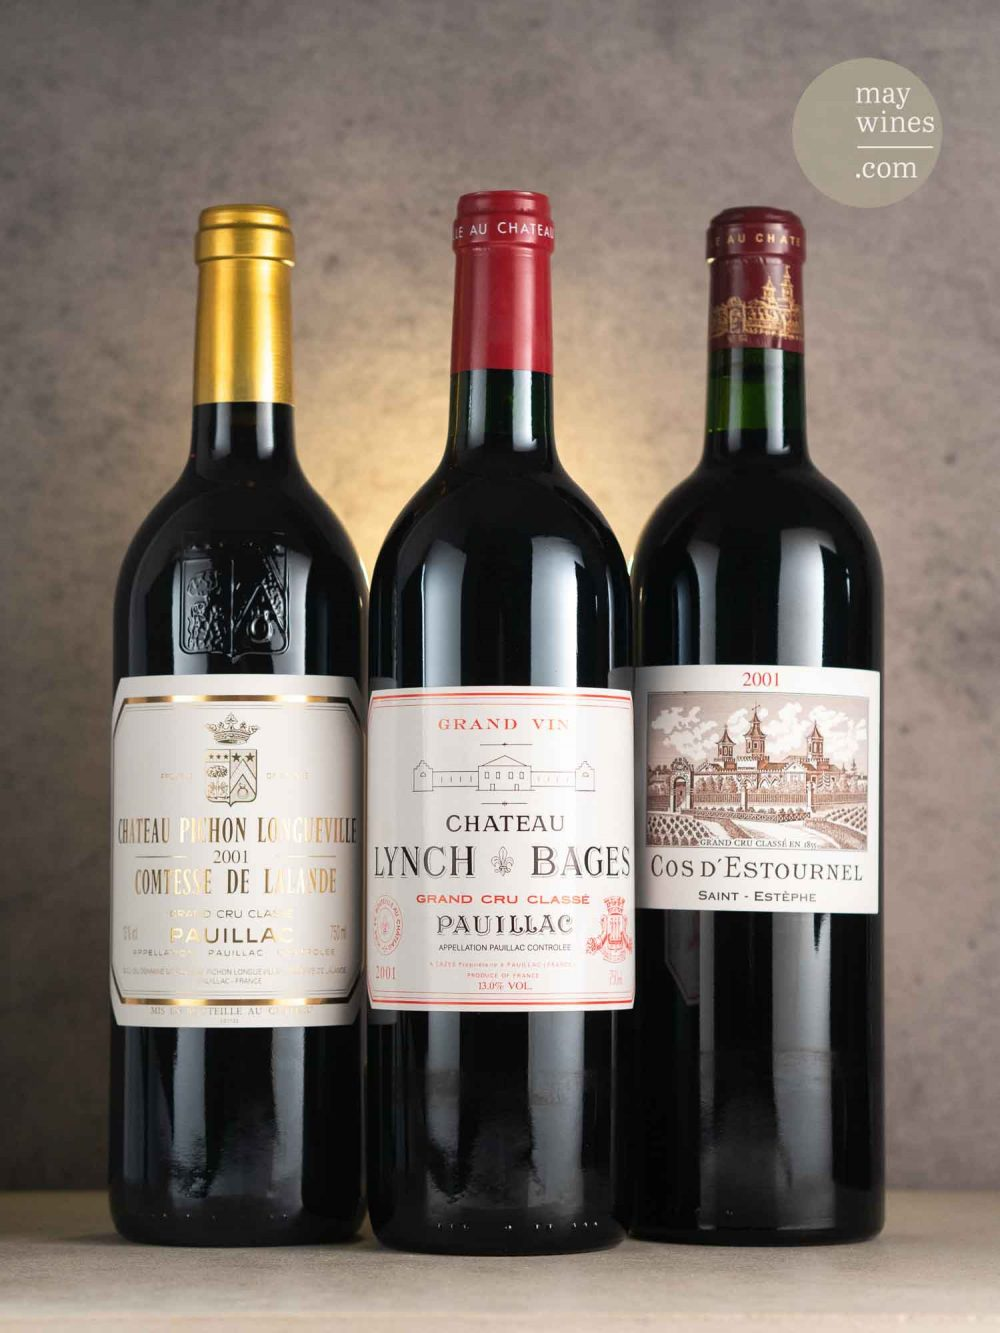 lynch-bages-cos-destournel-pichon-comtesse-2001-bordeaux-pauillac-saint-estephe